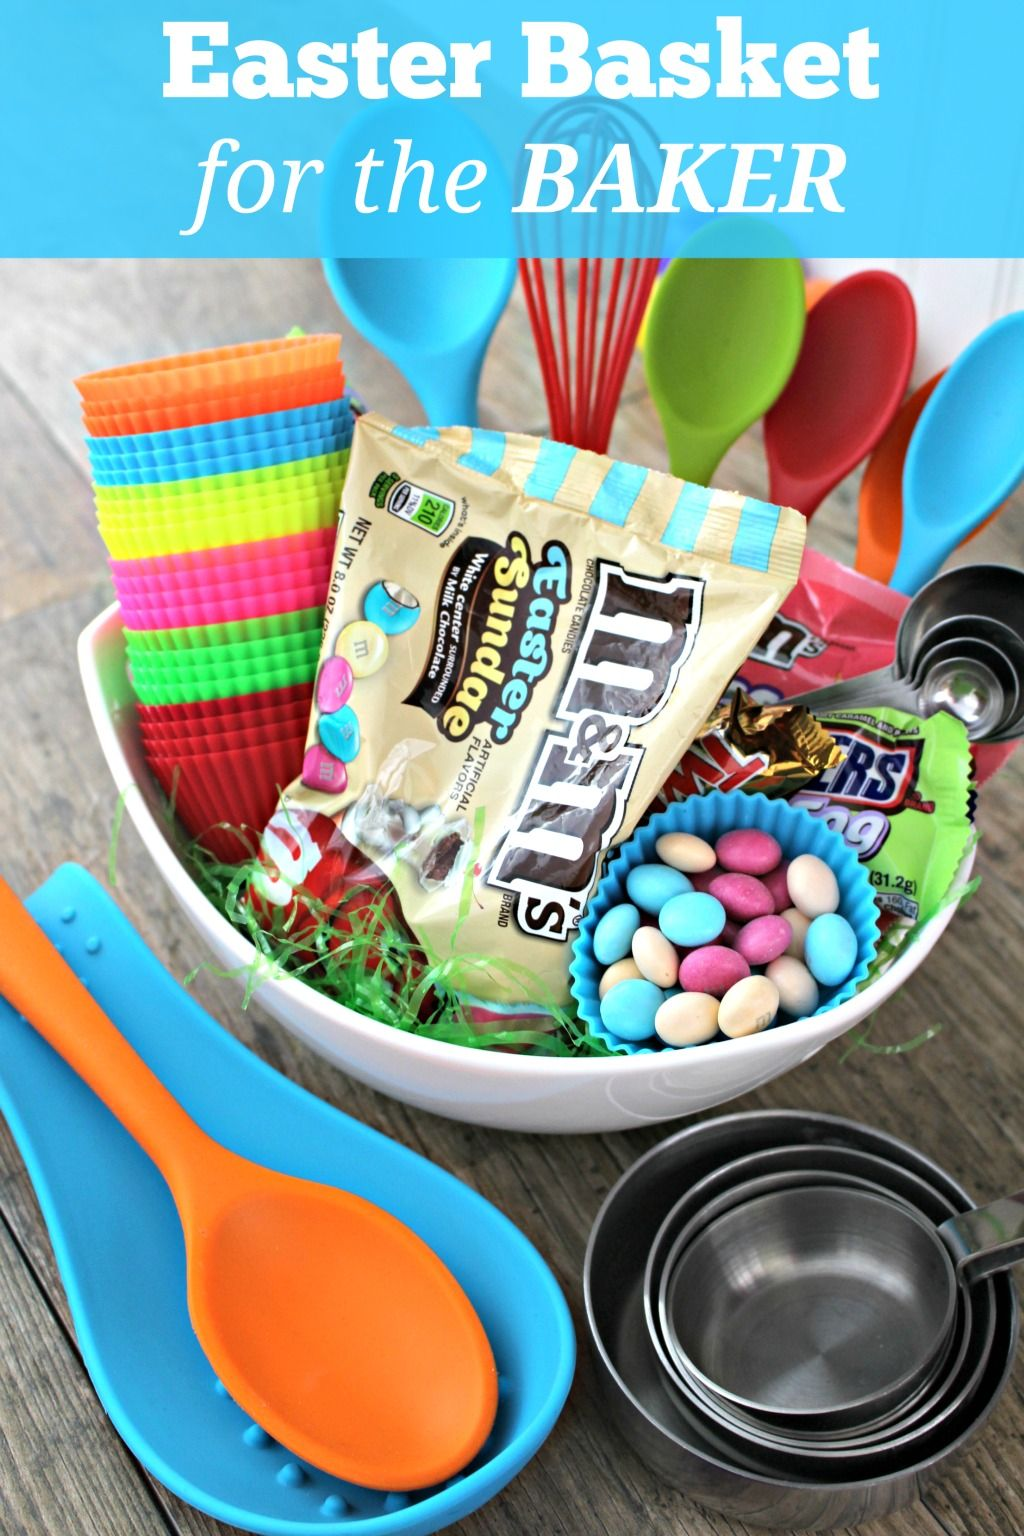 Whos ready for easter make your easter a sweetereaster with how does an easter basket for the baker in your house sound big or small anyone who loves to bake will love this easter basket idea negle Gallery